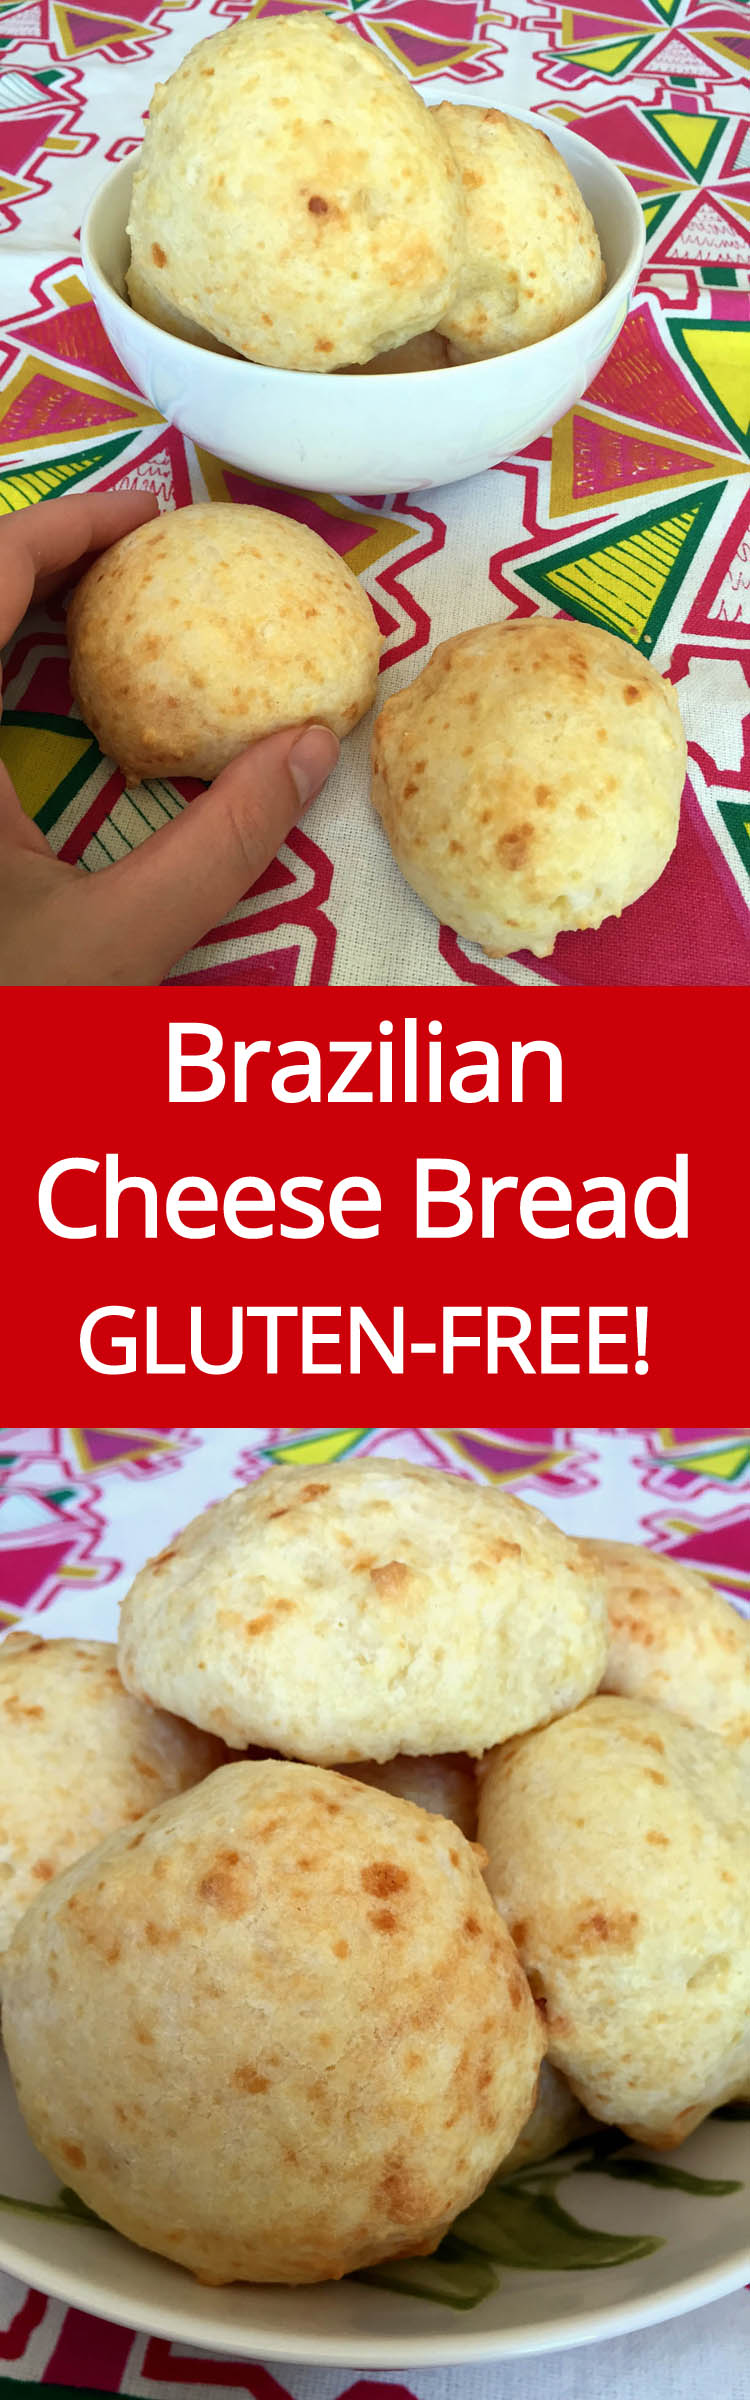 This authentic Brazilian Cheese Bread (Pao De Queijo) is naturally gluten-free and tastes amazing!